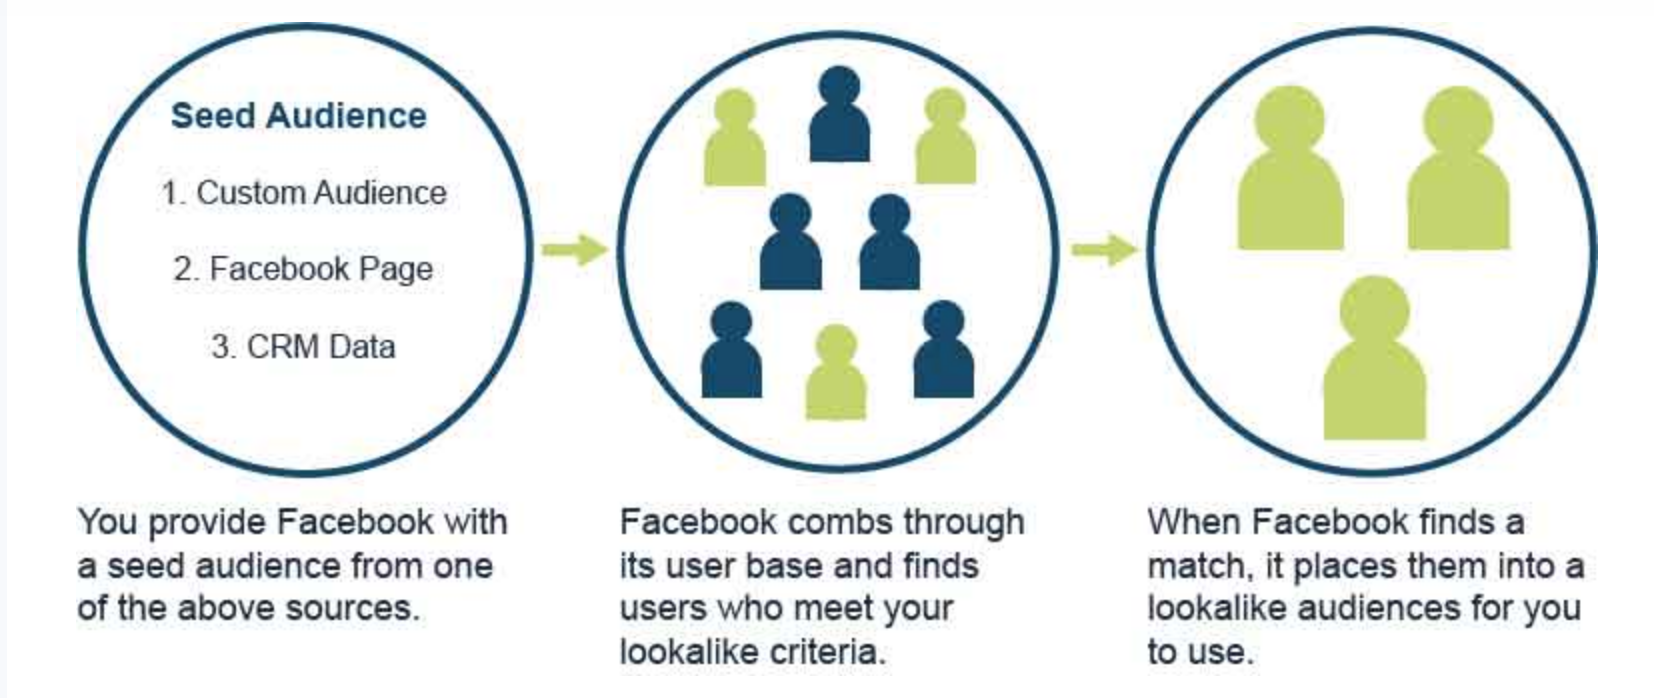 Find your best customer with lookalike audiences: - If you're already using a Custom Audience on your ad set, you may have saturated it (meaning people in it are no longer responding to your ads). To extend the success of that audience, we create lookalike audiences, which finds people similar to those in your source audience.